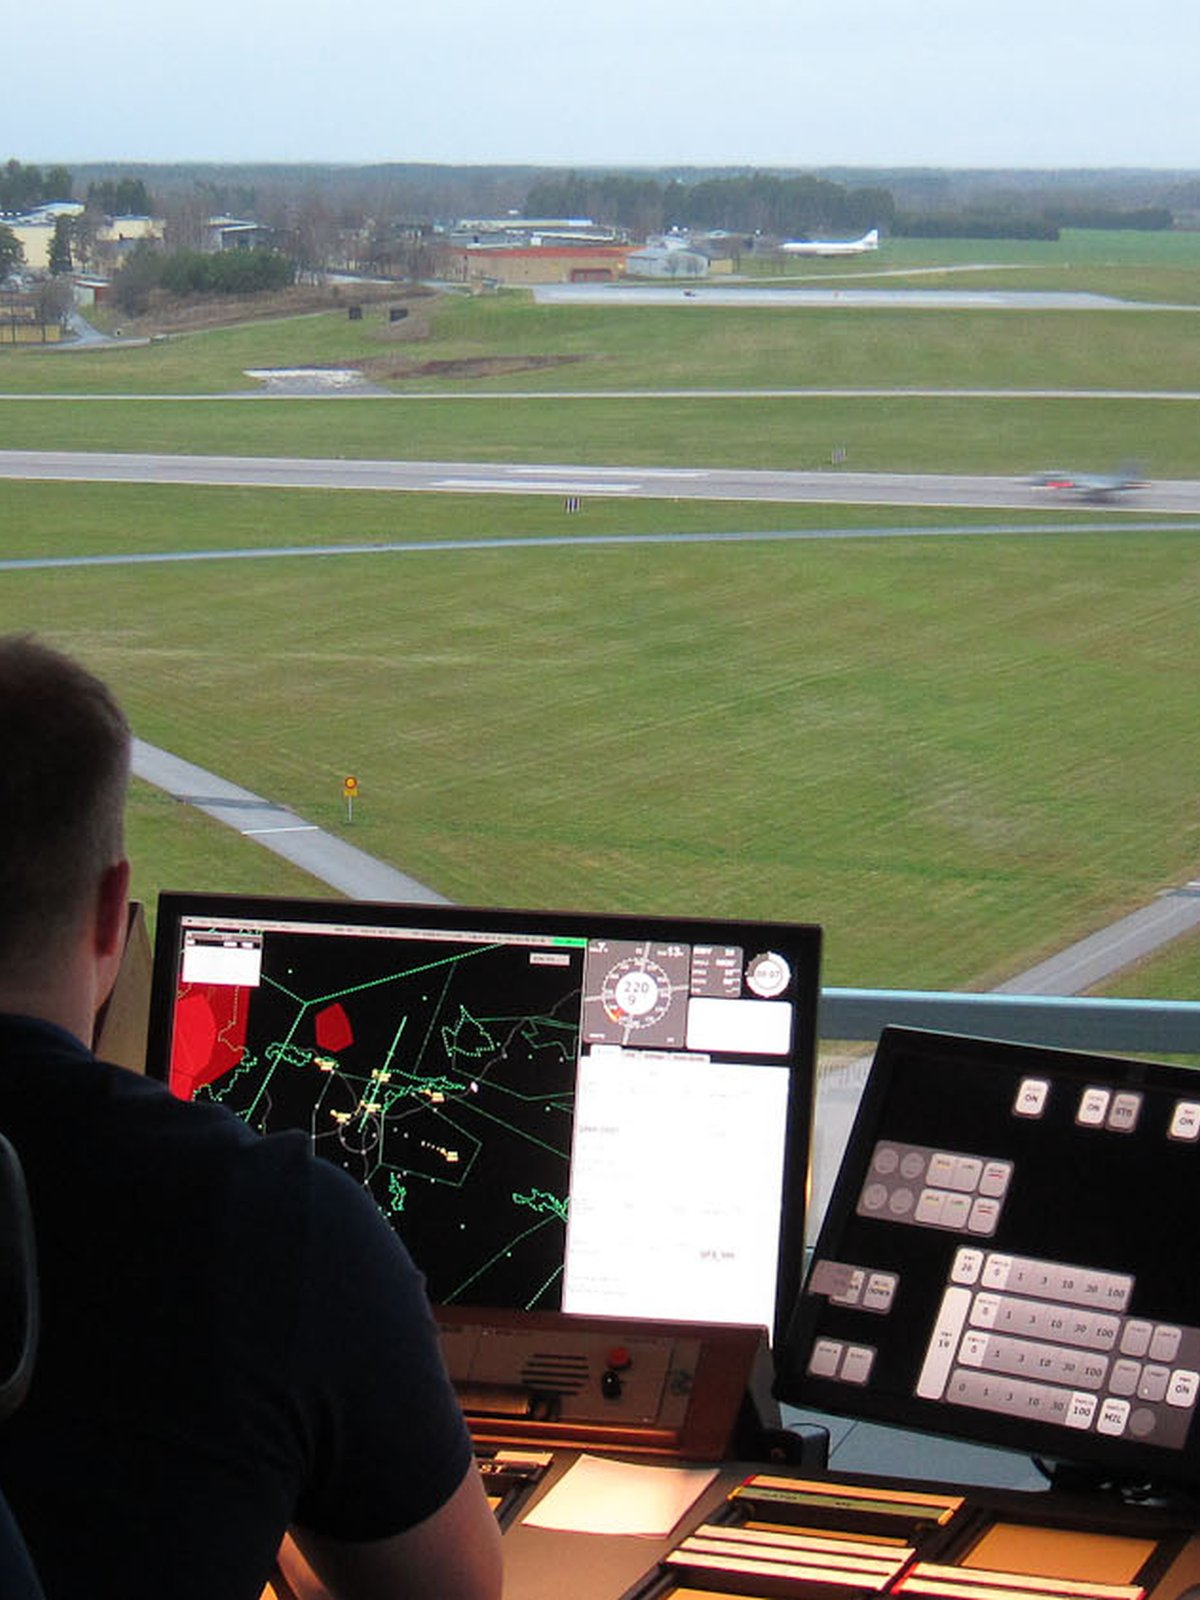 Person in flight control tower.